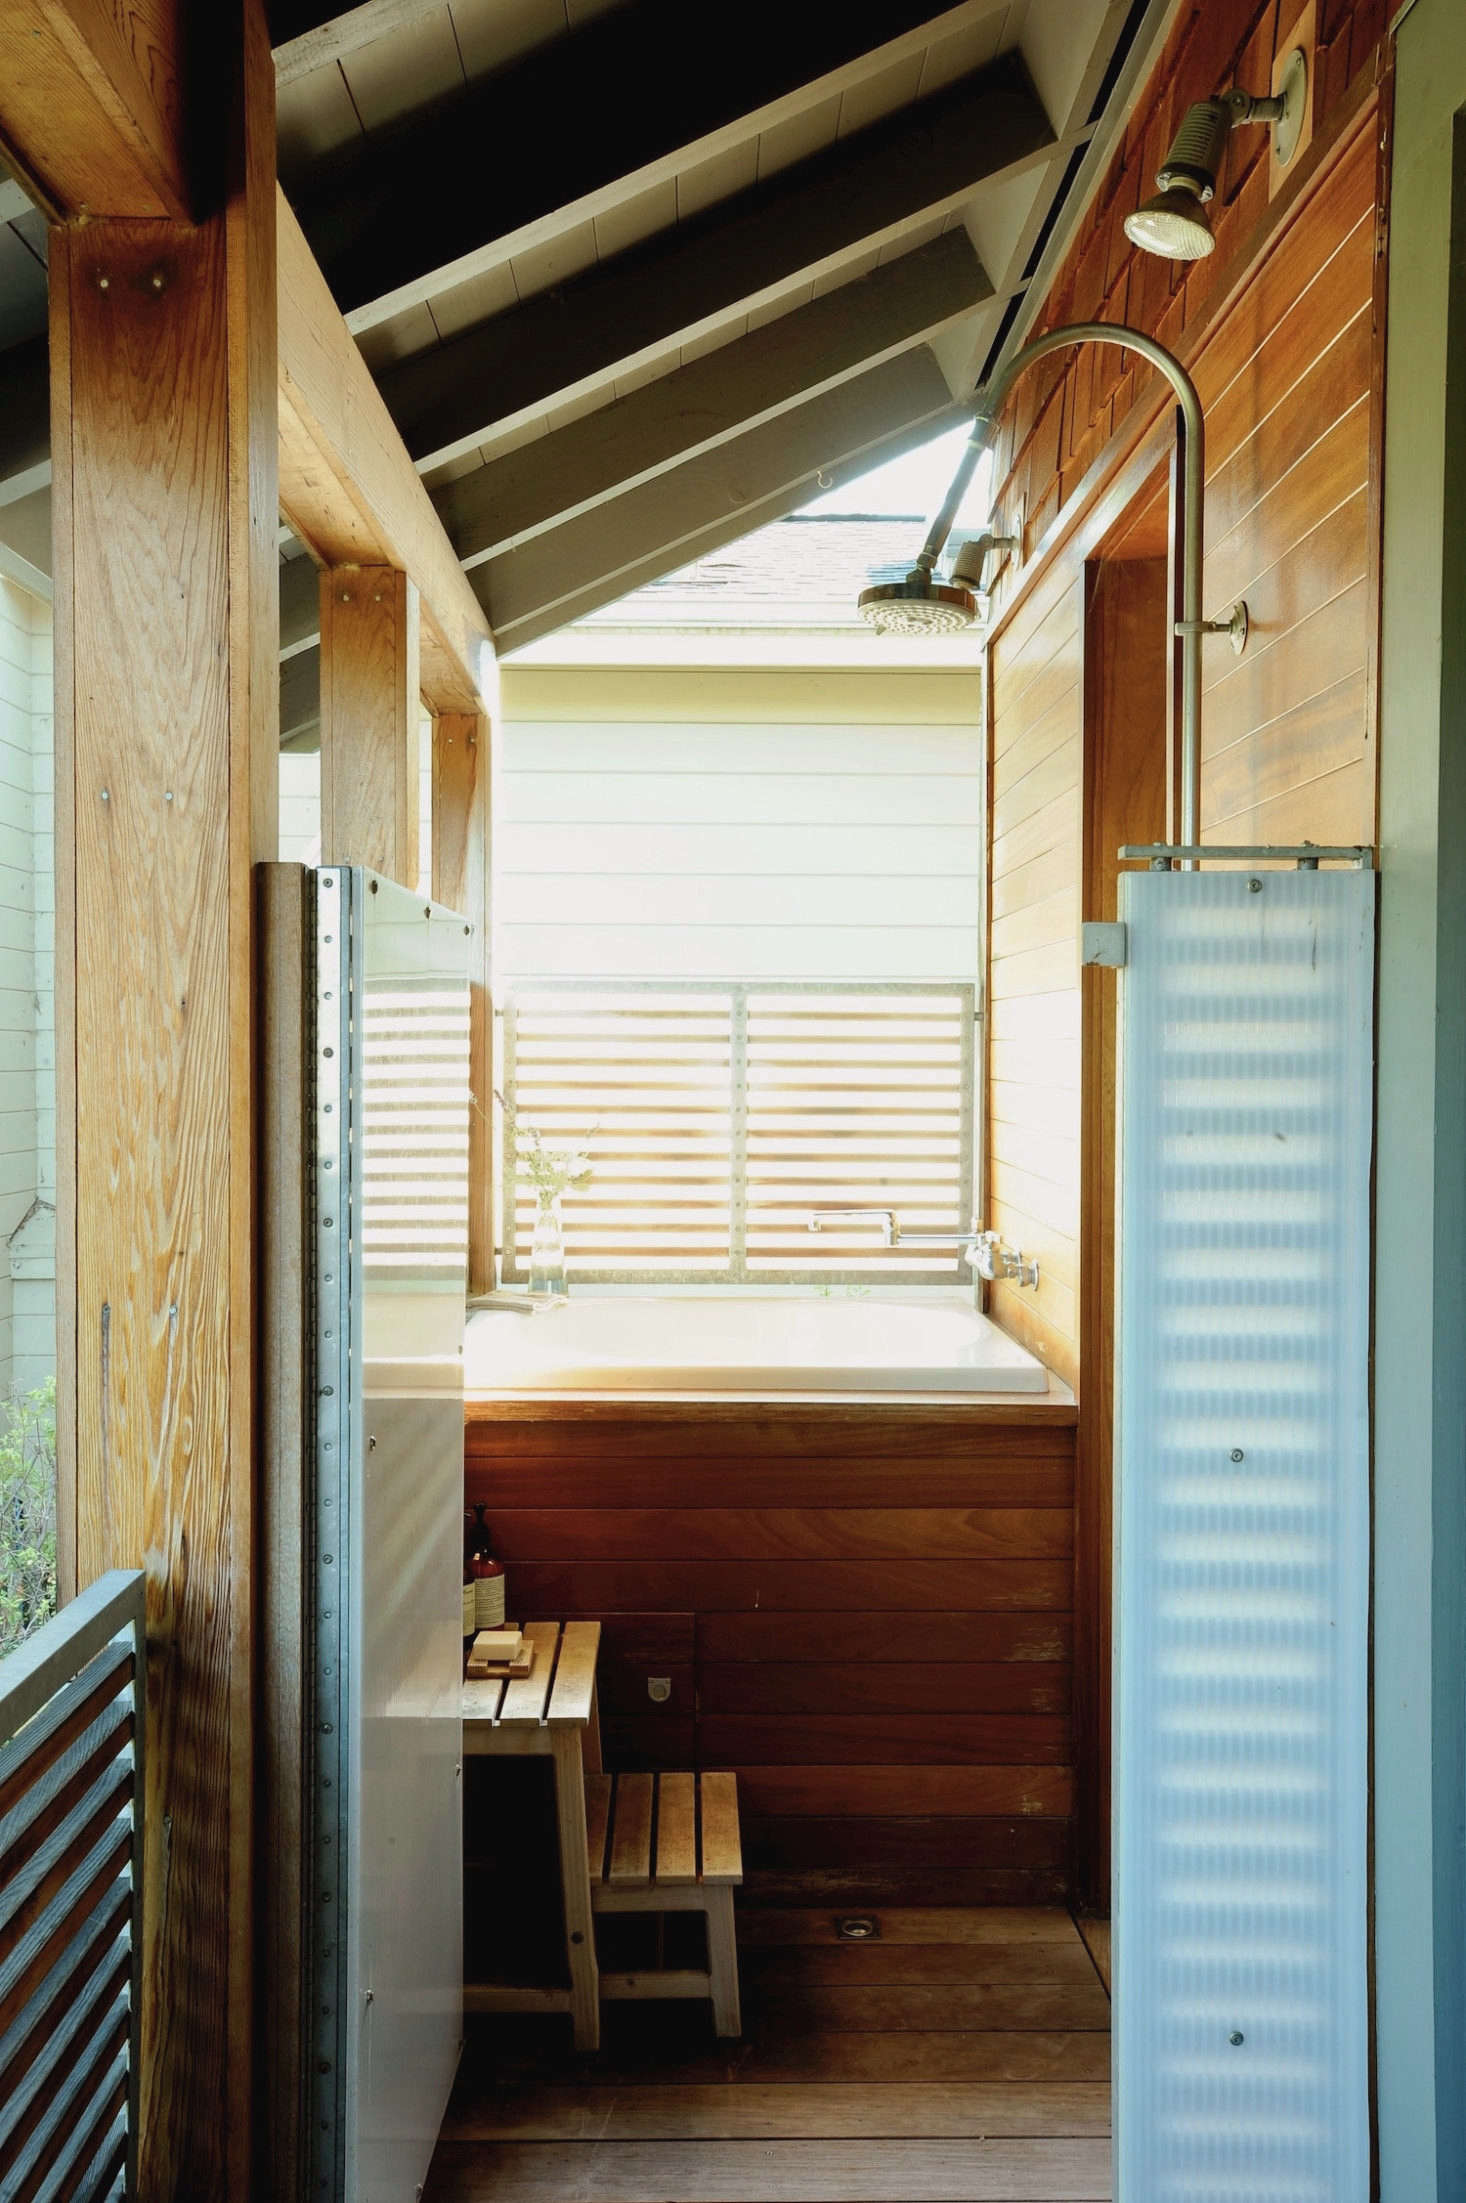 In Remodelista editor-in-chief Julie Carlson's outdoor shower in Mill Valley, architect Jerome Buttrick spec'd Polygal's Co-Extruded Polycarbonate Panels to create privacy while letting light through. Photograph by Matthew Williams for Remodelista. See more atGarden Hacks: 10 Ideas Under $100 to Create Instant Privacy.